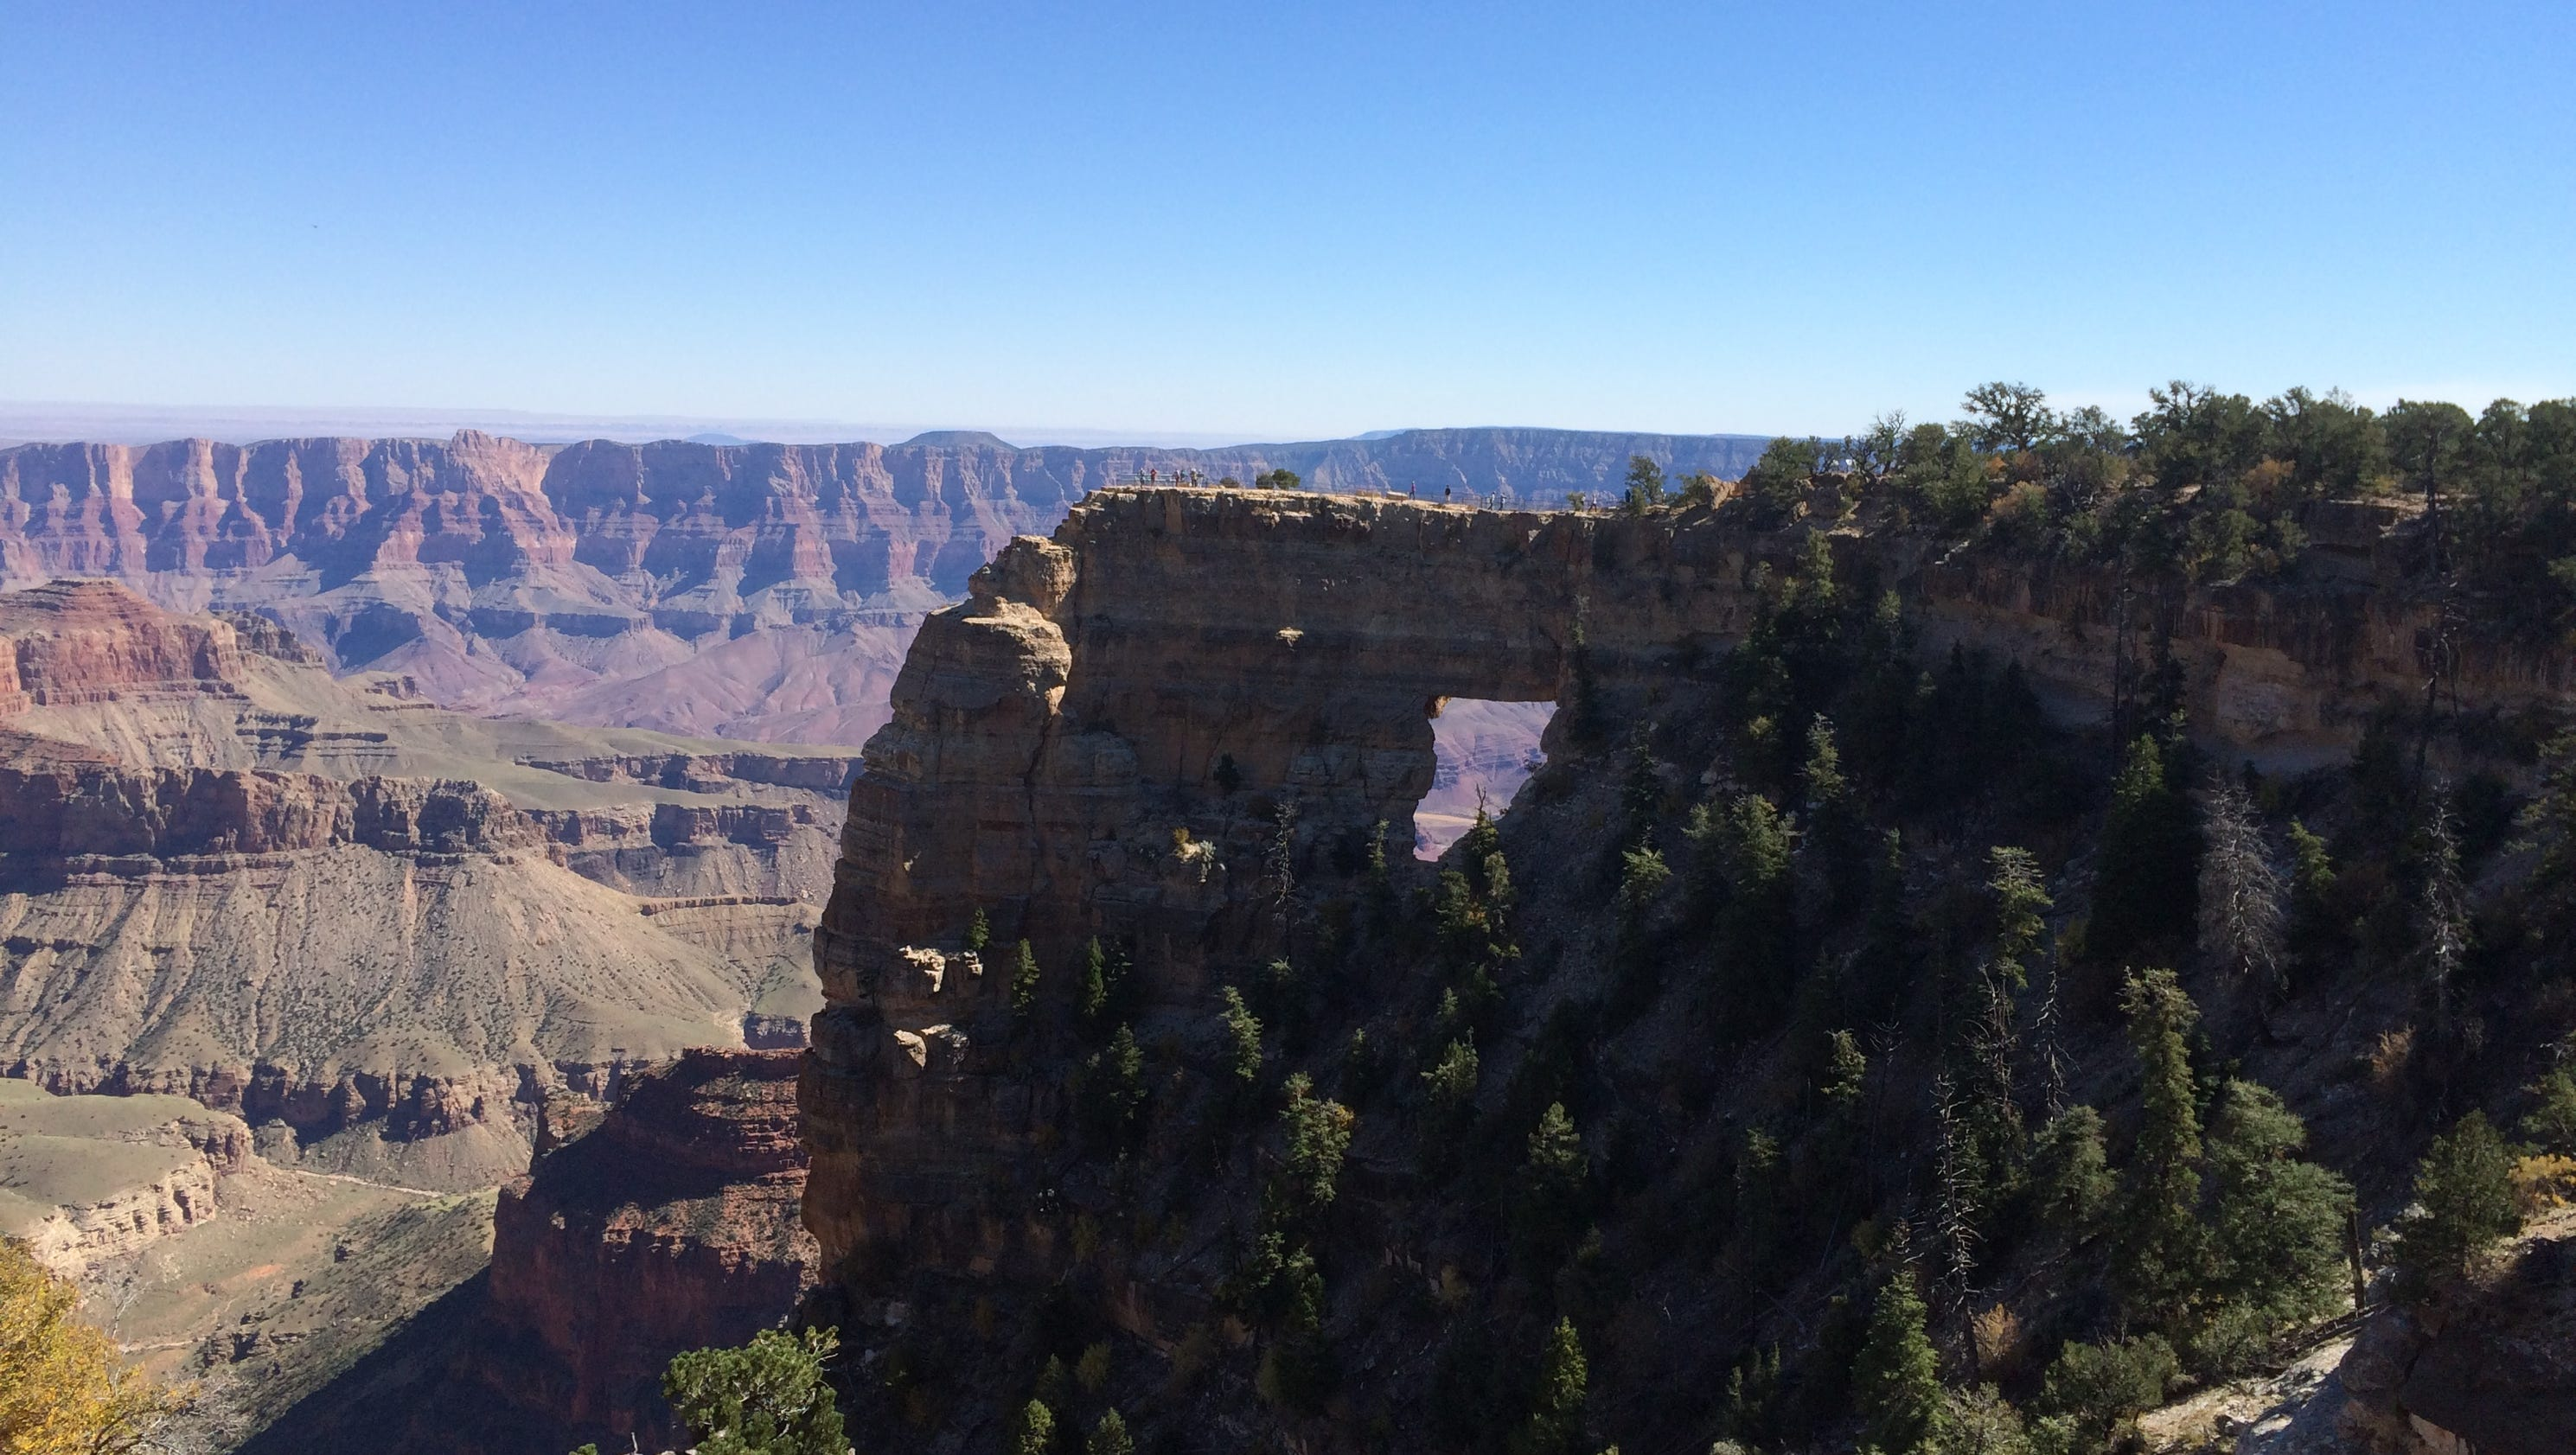 north rim chat North rim park ranger program july 11- sept 3 8:30 am nature walk : learn about the natural processes that sustain pine and aspen forest 10 am critter chat: discover the animals that call this place home.